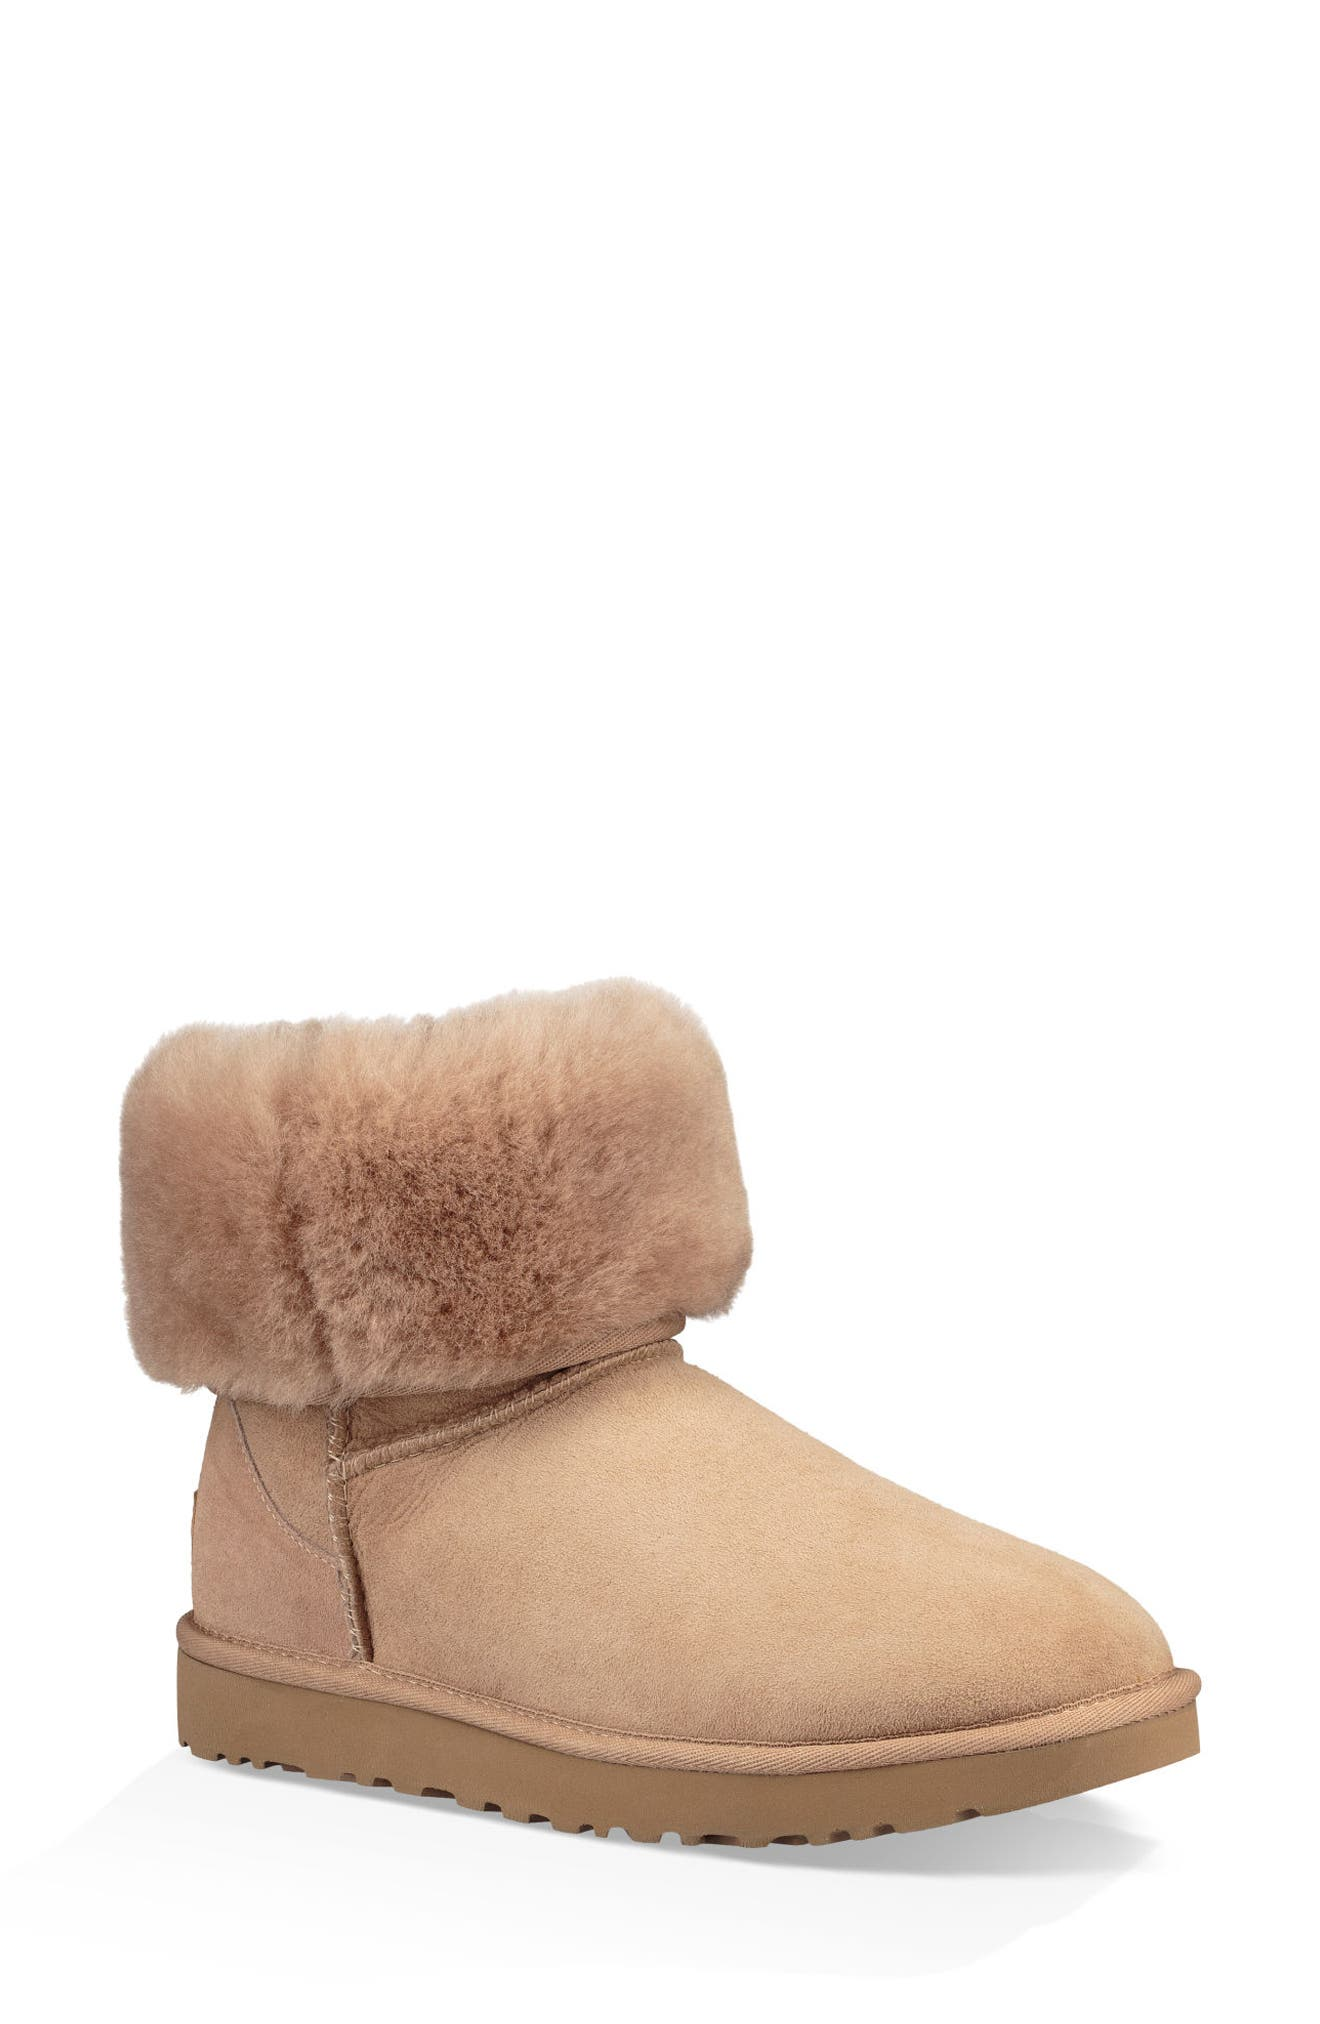 'Classic II' Genuine Shearling Lined Short Boot,                             Alternate thumbnail 3, color,                             Fawn Suede